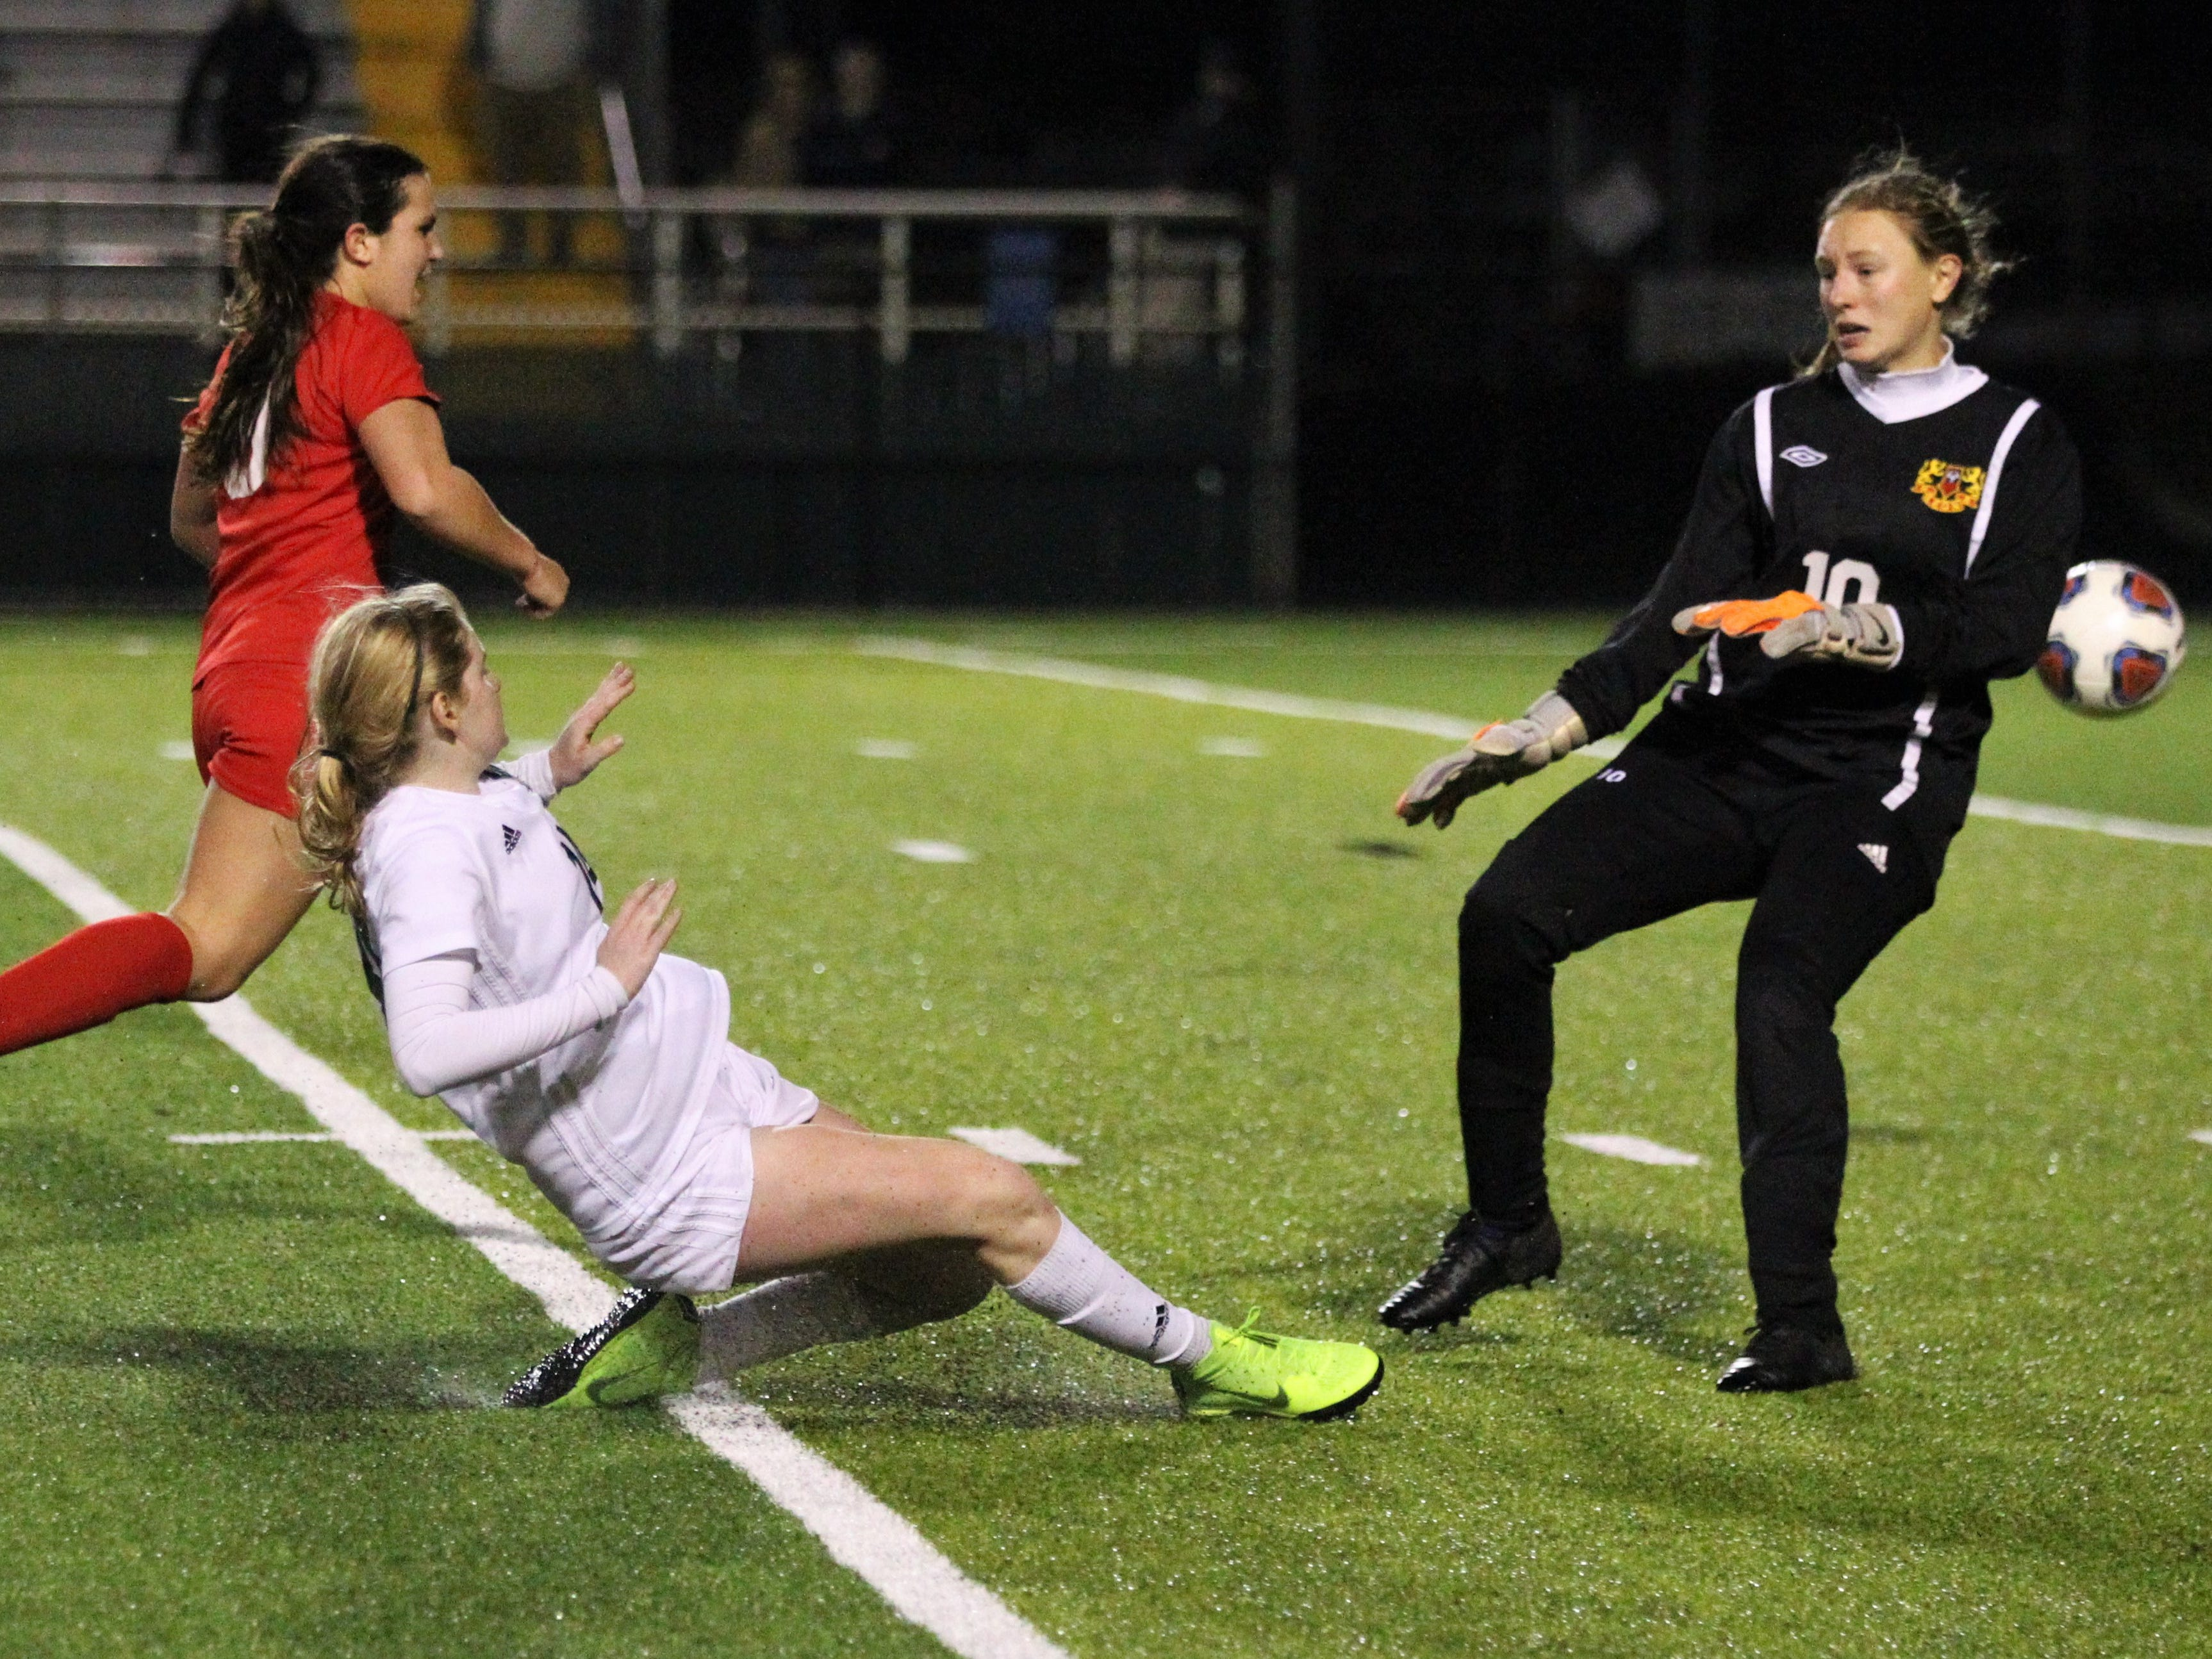 Leon keeper Regan Hermeling comes out of the box to disrupt a last-second shot attempt by Lincoln senior McIver Levy as Leon's girls soccer team beat Lincoln 2-1 in the District 2-4A championship at Gene Cox Stadium on Feb. 1, 2019.